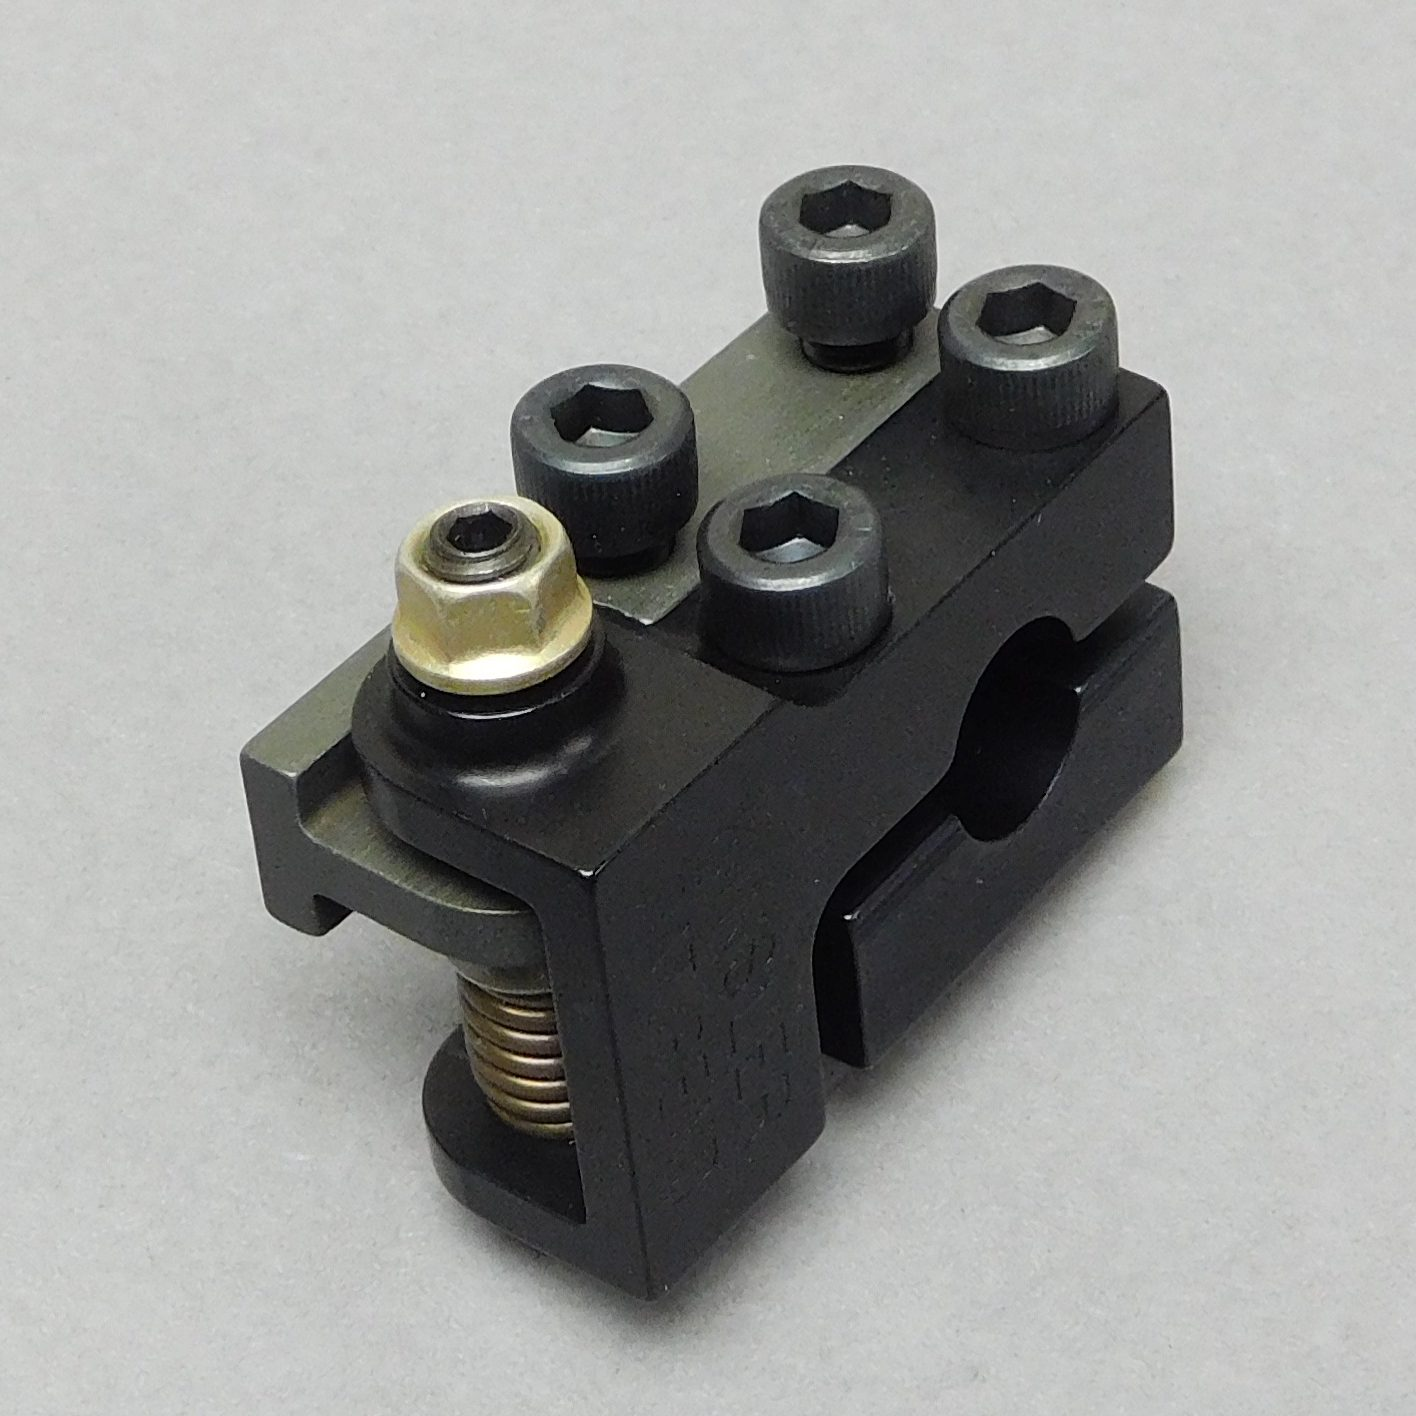 SPRING-SCREW LINKAGE